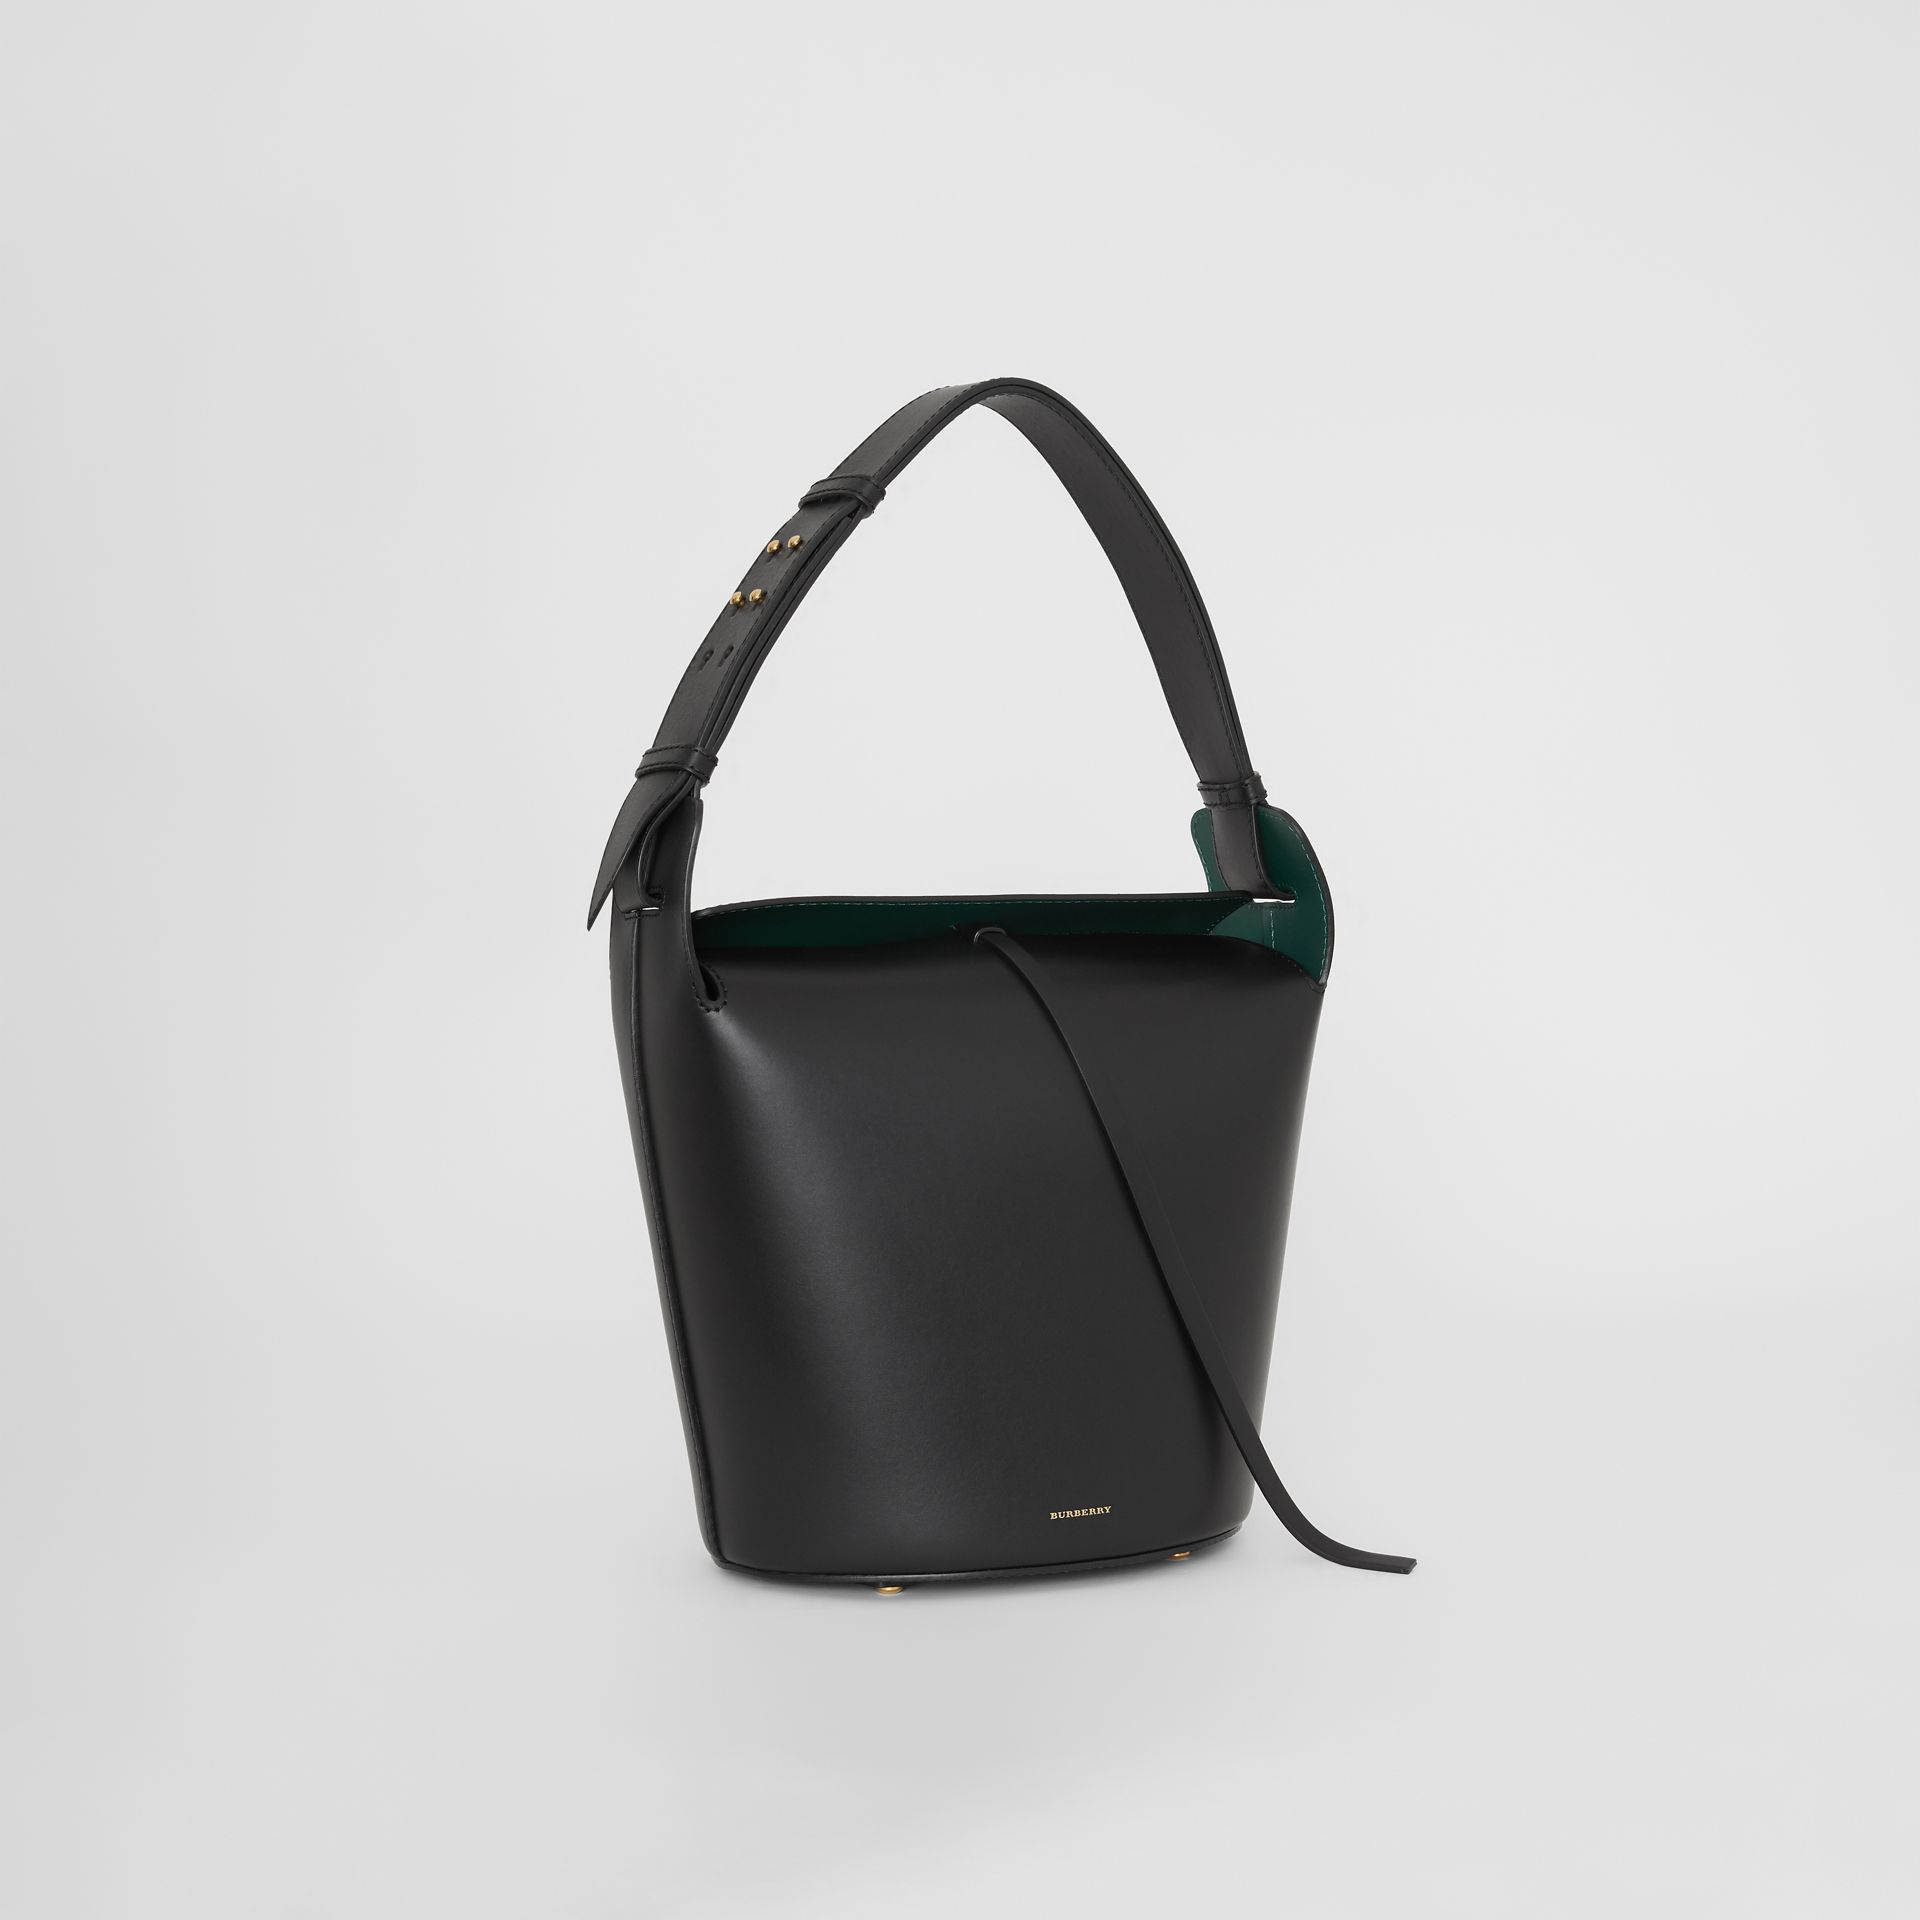 Sac The Bucket moyen en cuir (Noir) - Femme | Burberry Canada - photo de la galerie 6